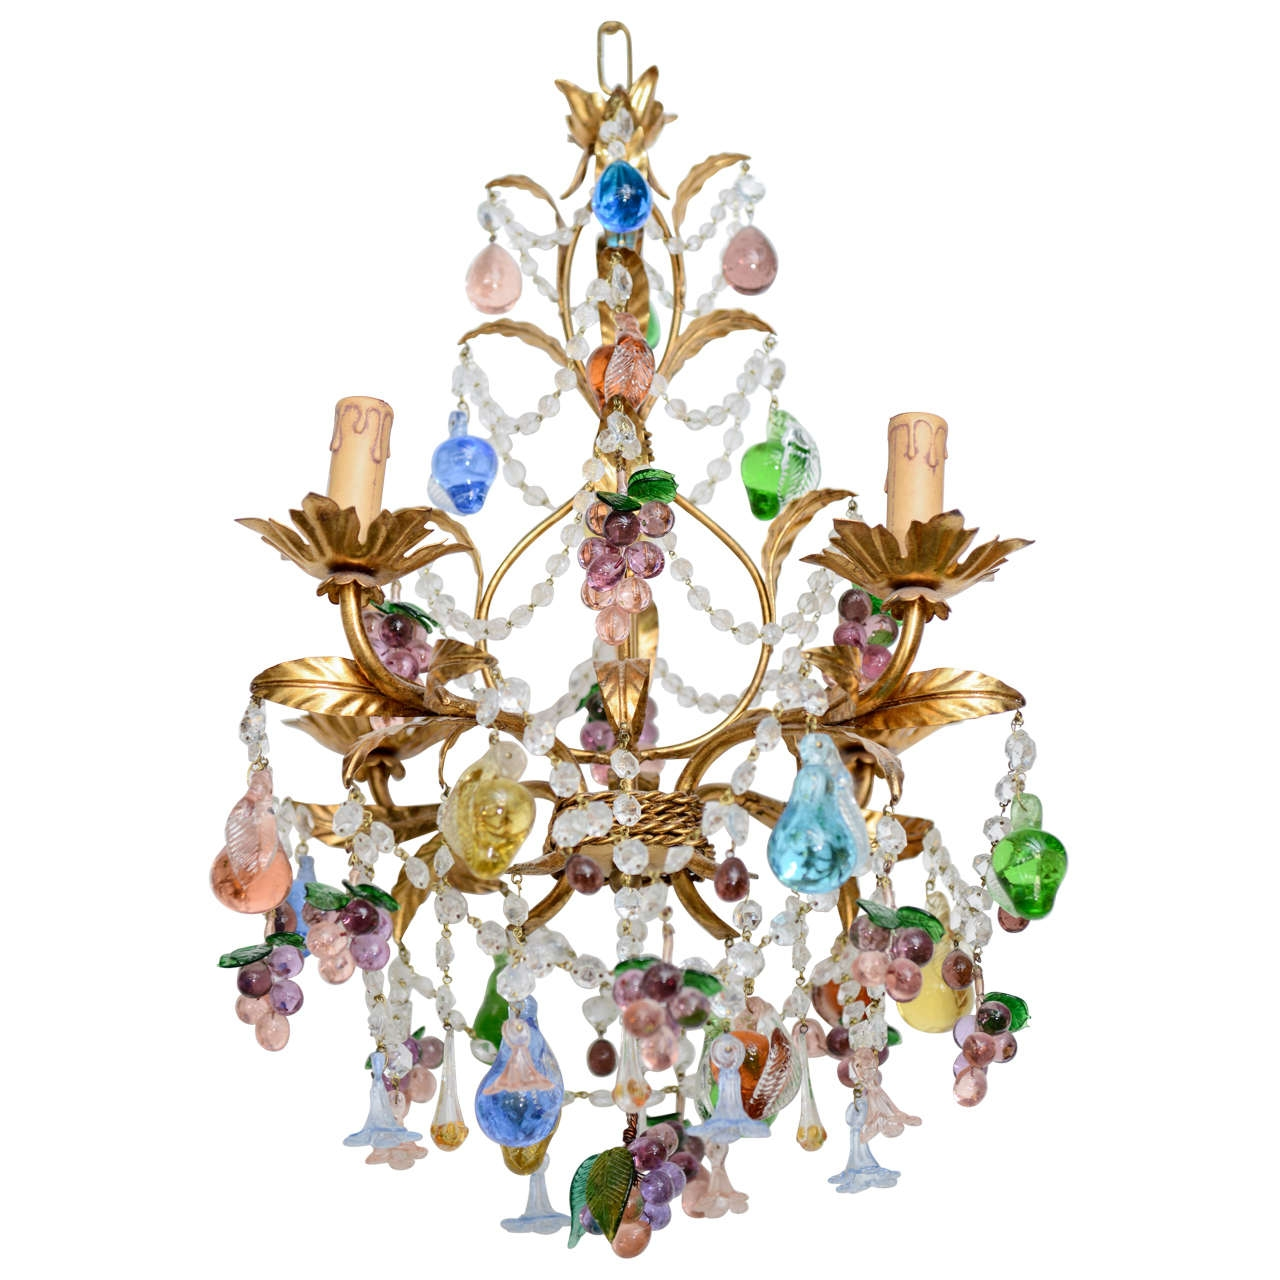 Murano Chandelier Nz: 25 Inspirations Small Gypsy Chandeliers